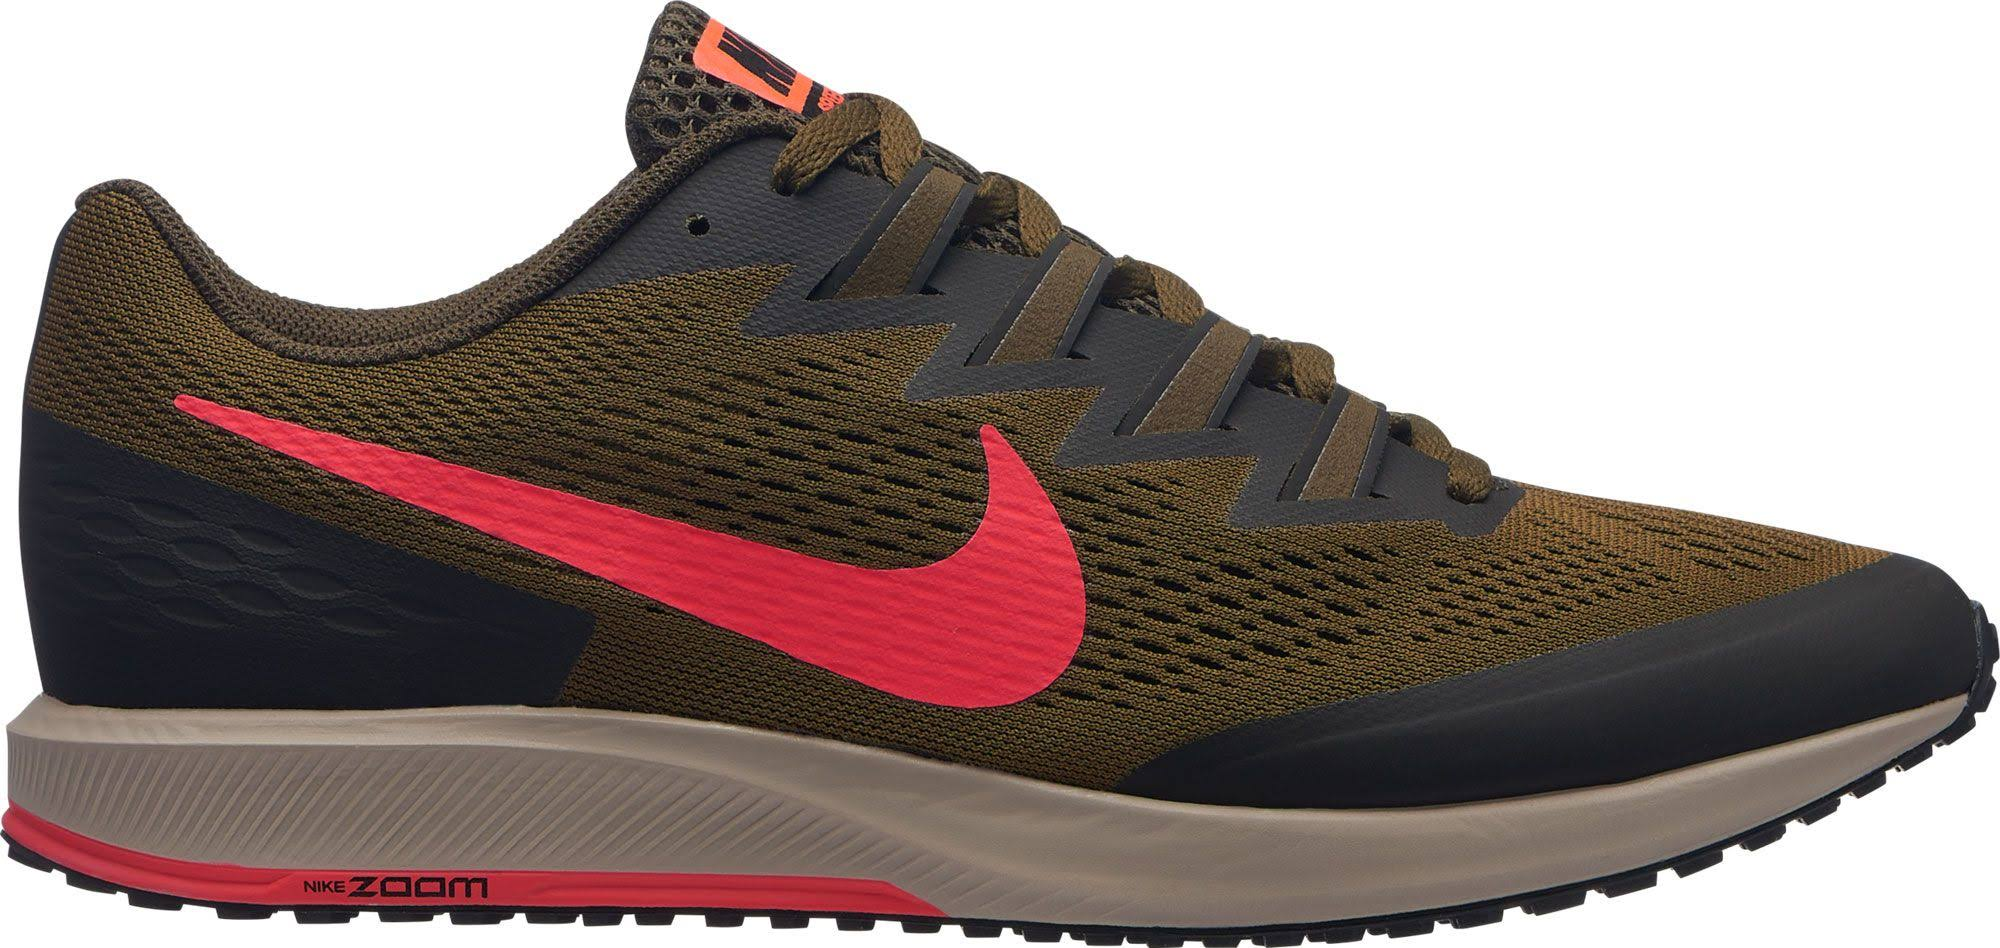 W7 6 rival Tamaño 5 Cross Nike Verde Shoes M6 Hombre Speed Country Zoom tqEnHwv